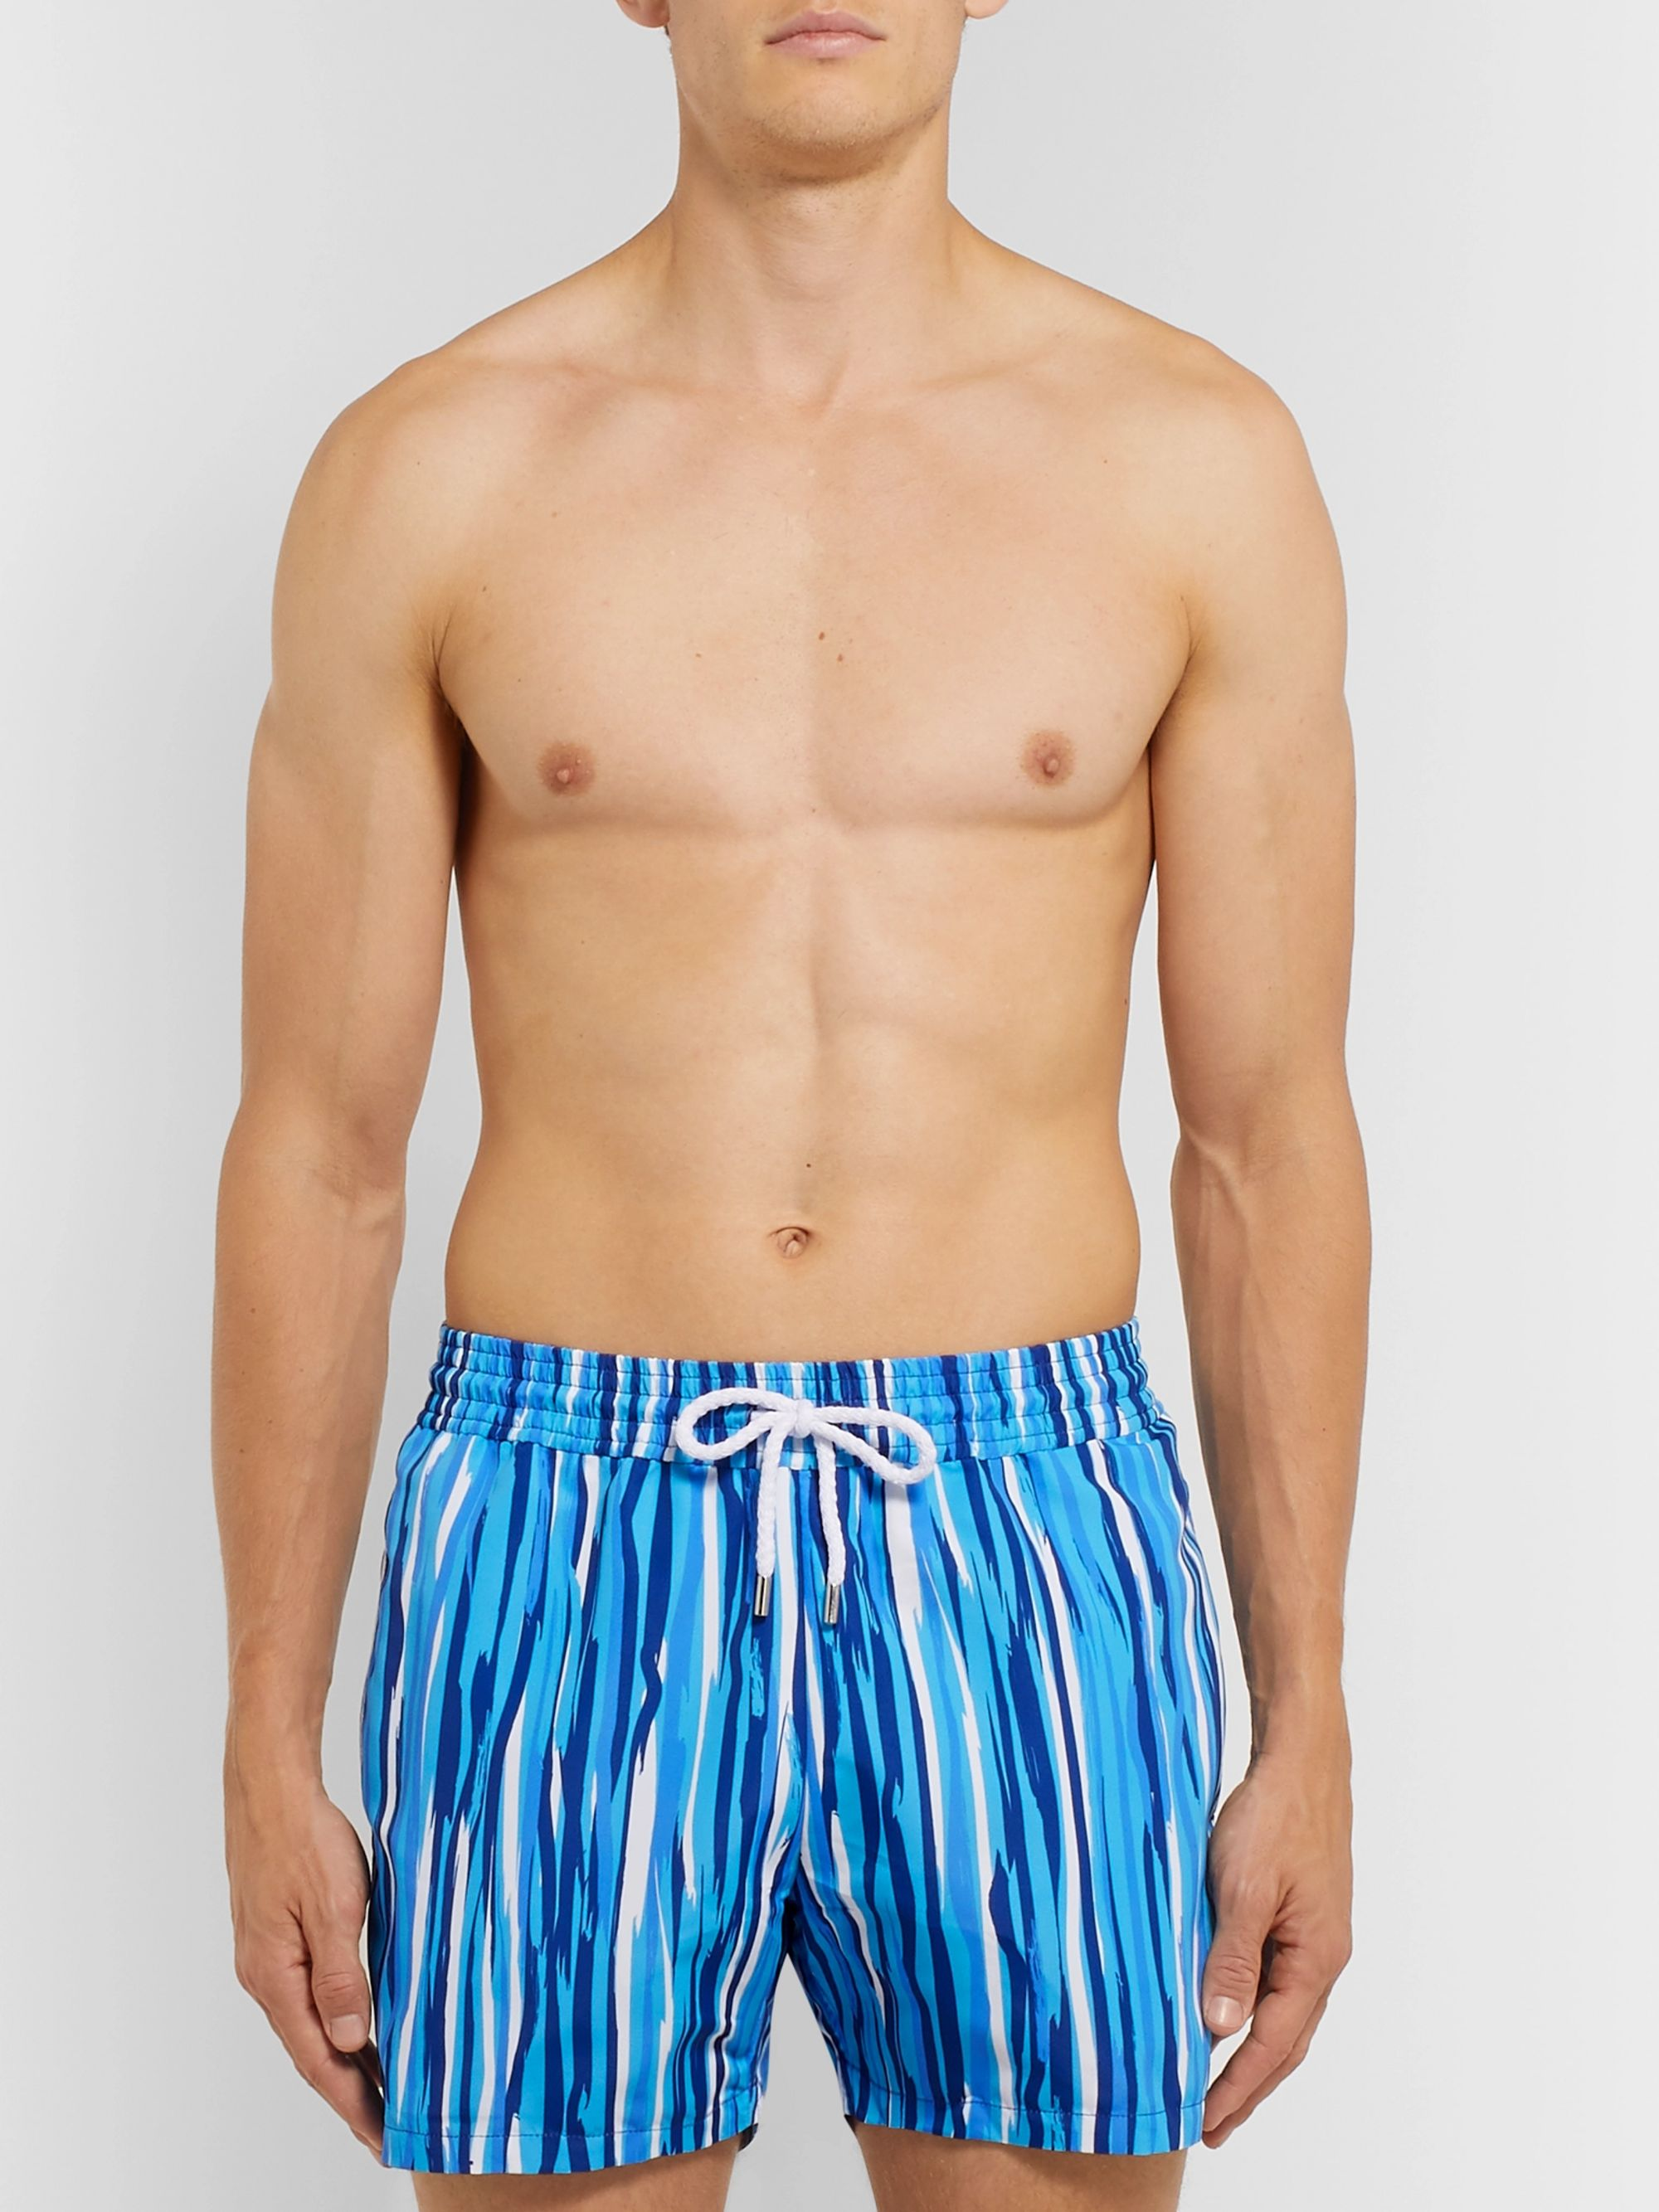 Frescobol Carioca Açu Slim-Fit Short-Length Printed Swim Shorts